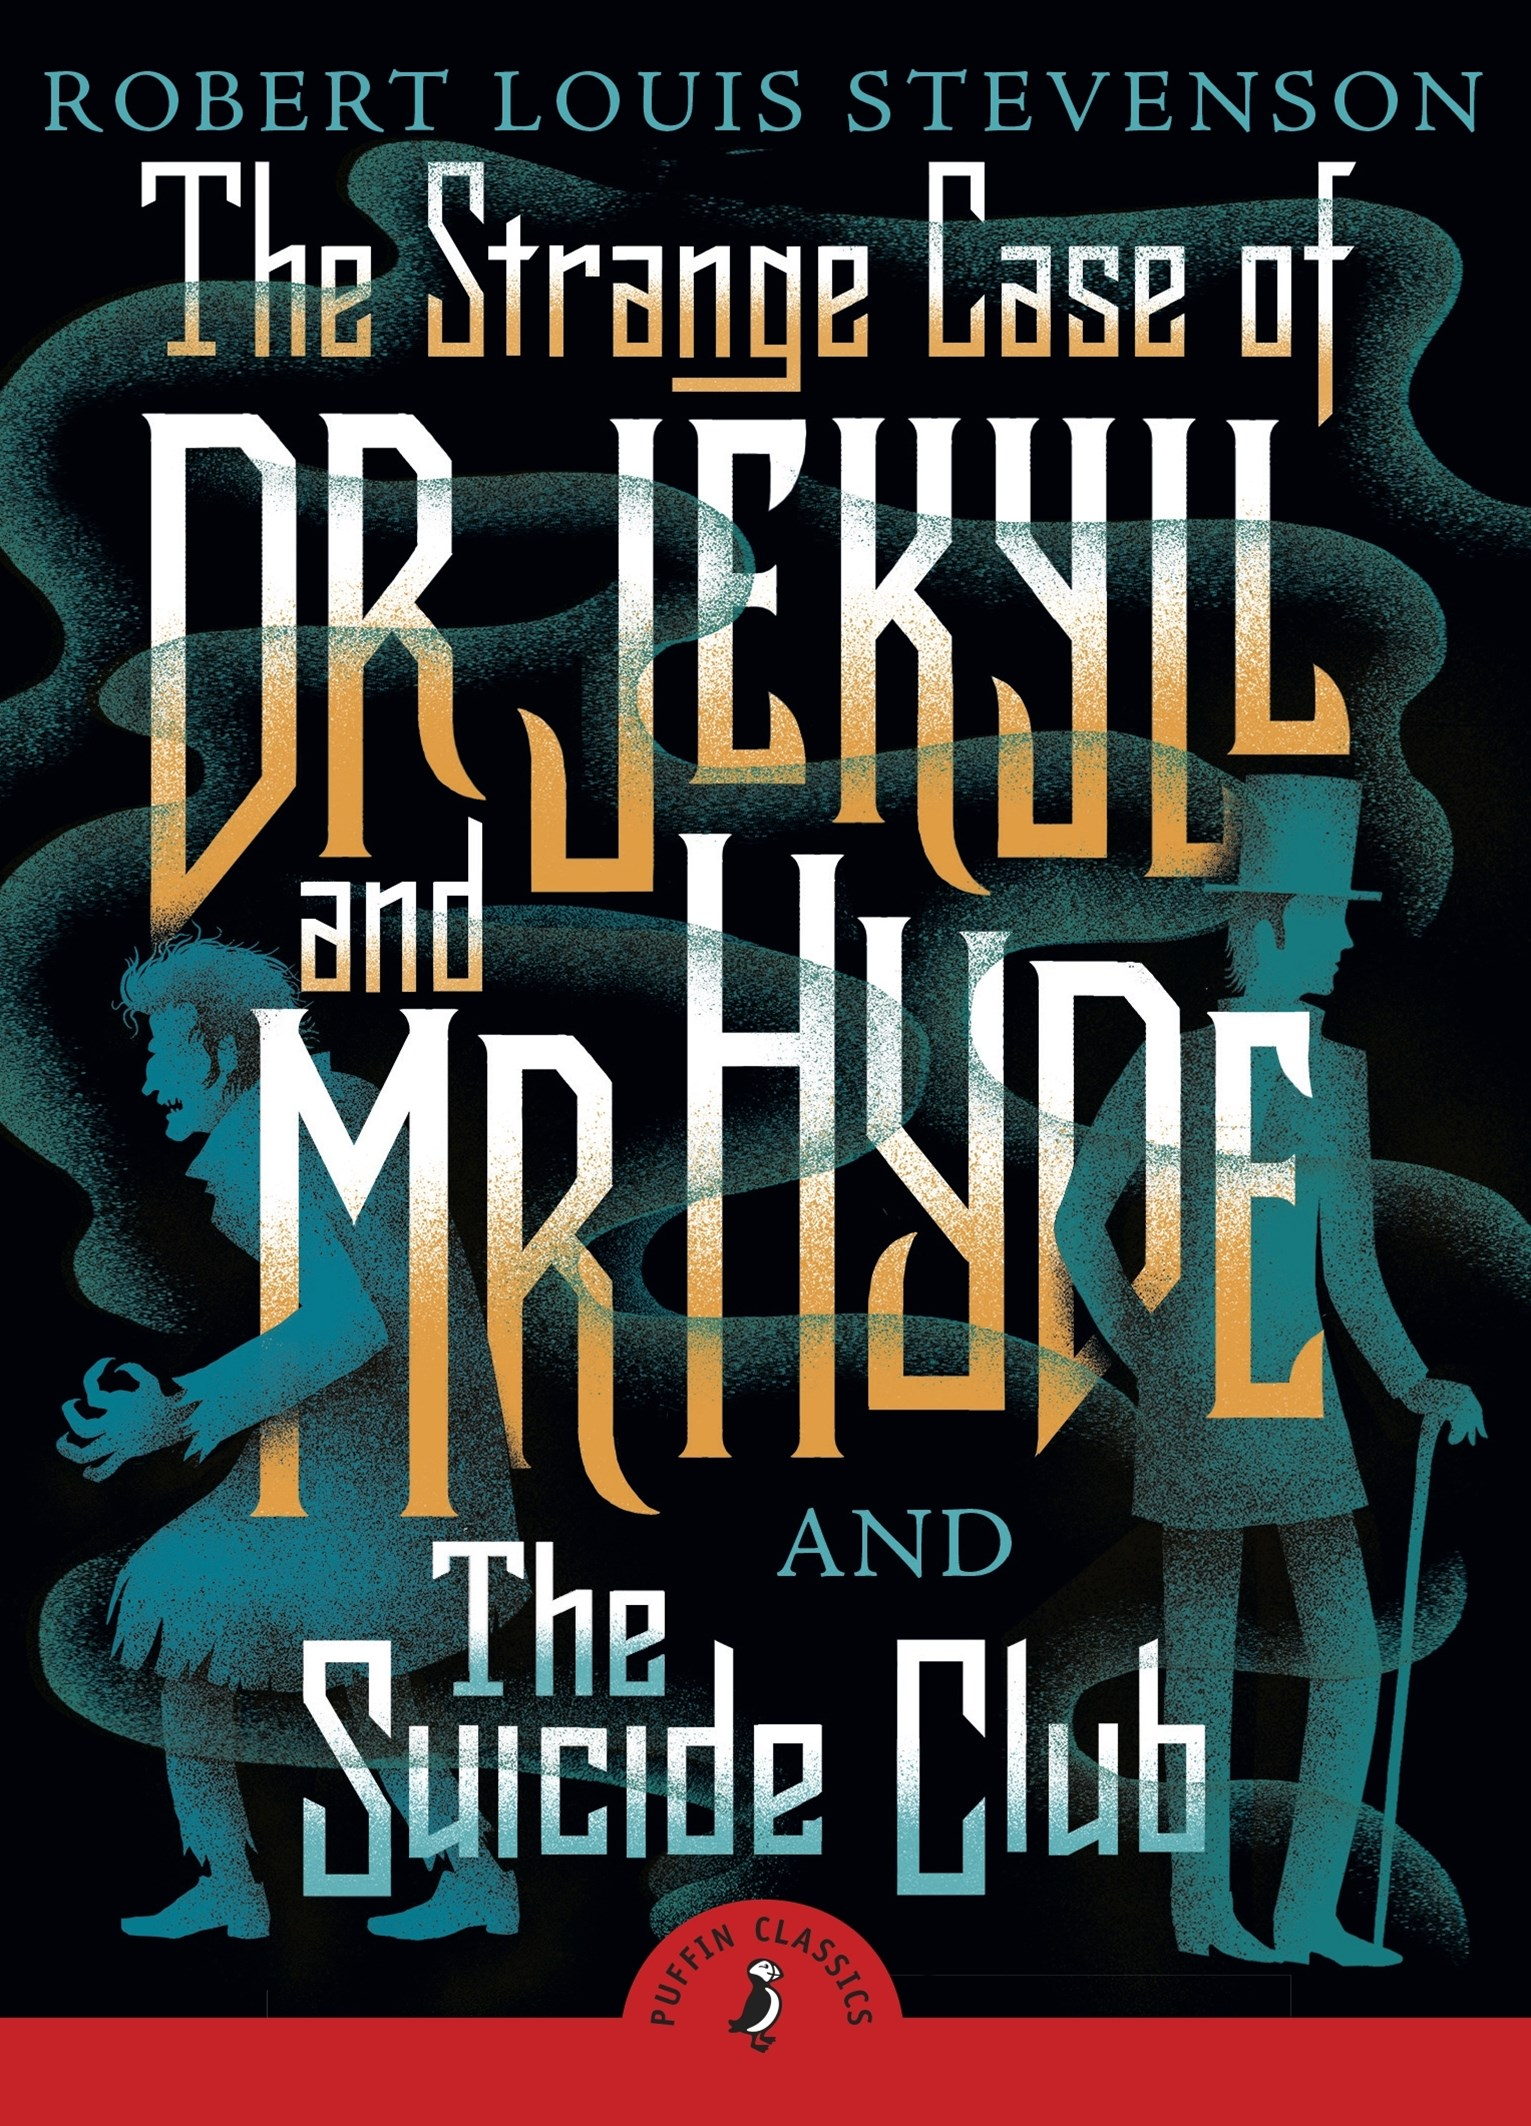 Strange Case Of Dr Jekyll And Mr Hyde And The Suicide Club,The